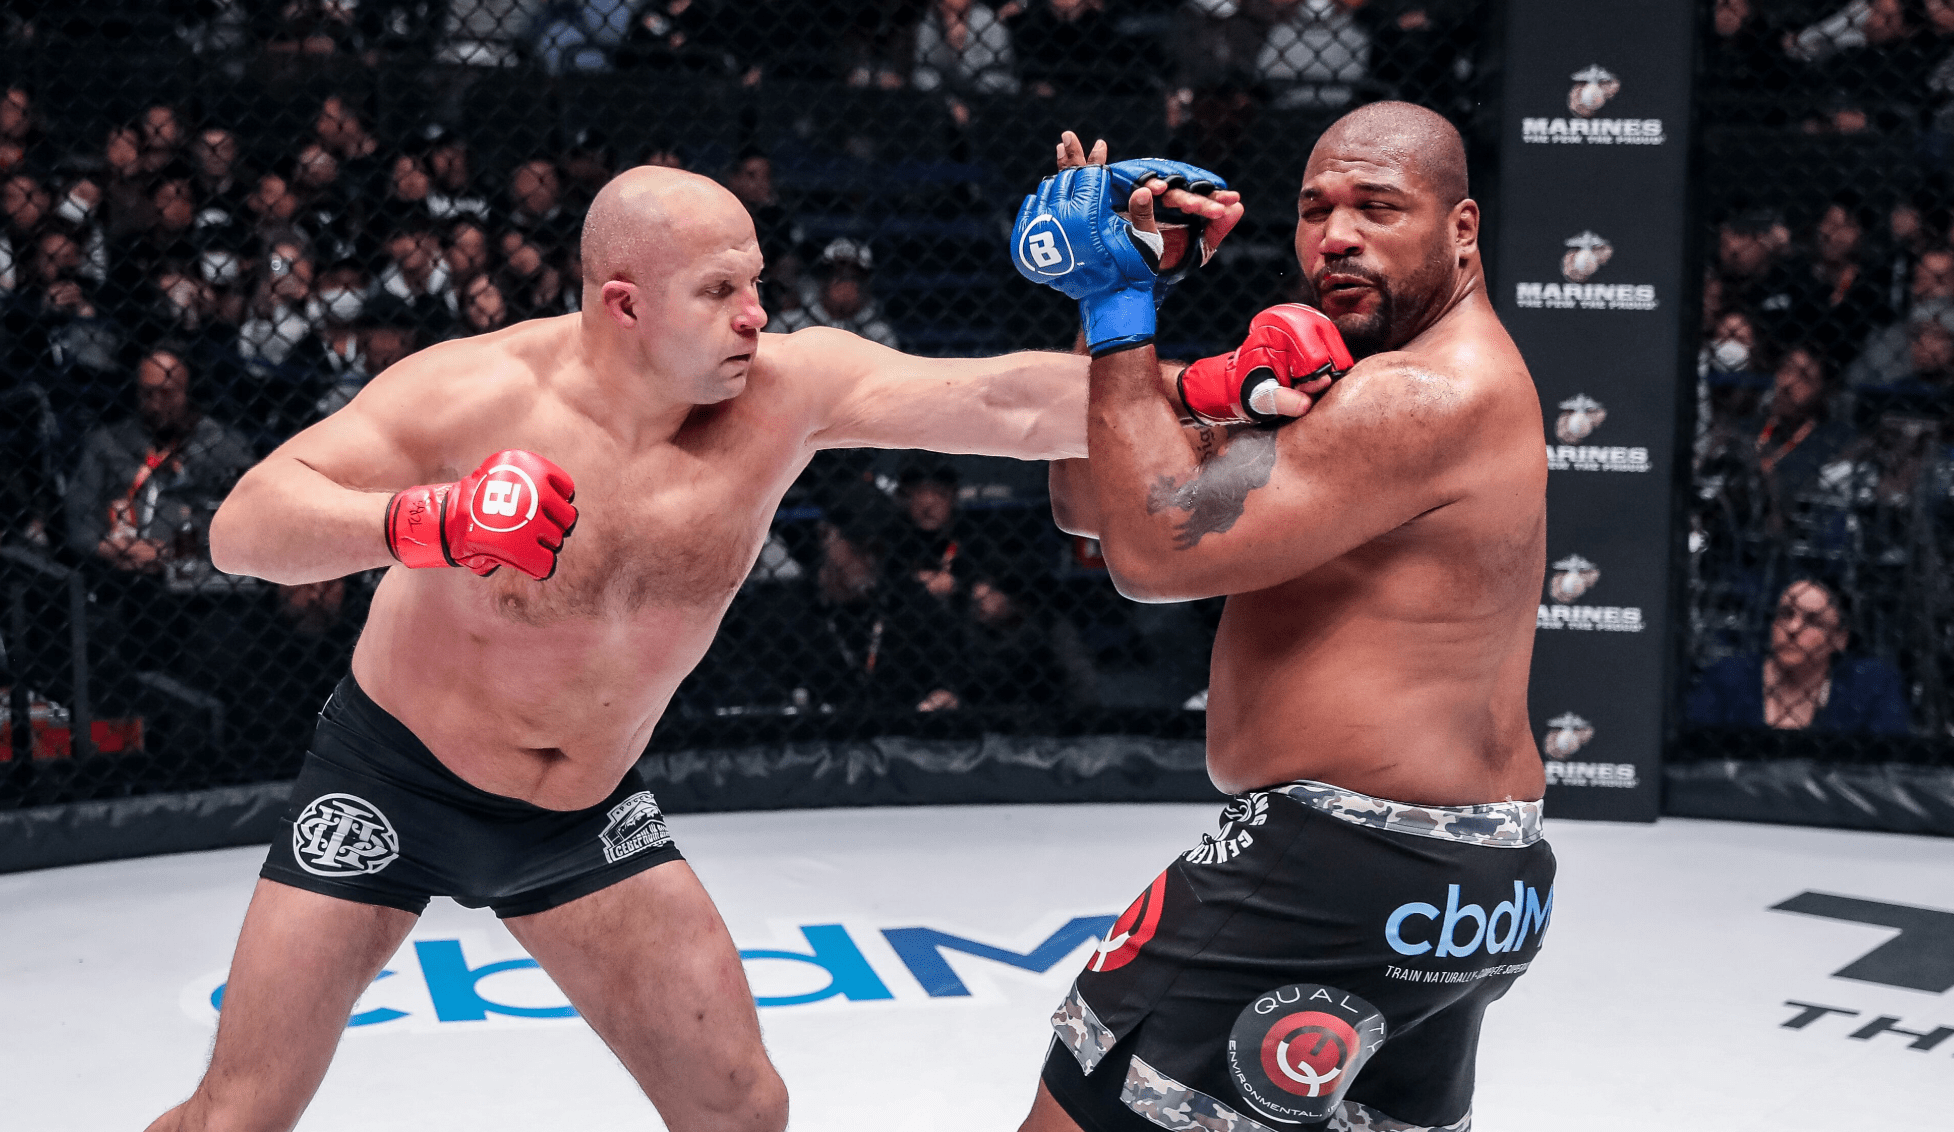 Bellator Japan: Fedor vs 'Rampage' Results